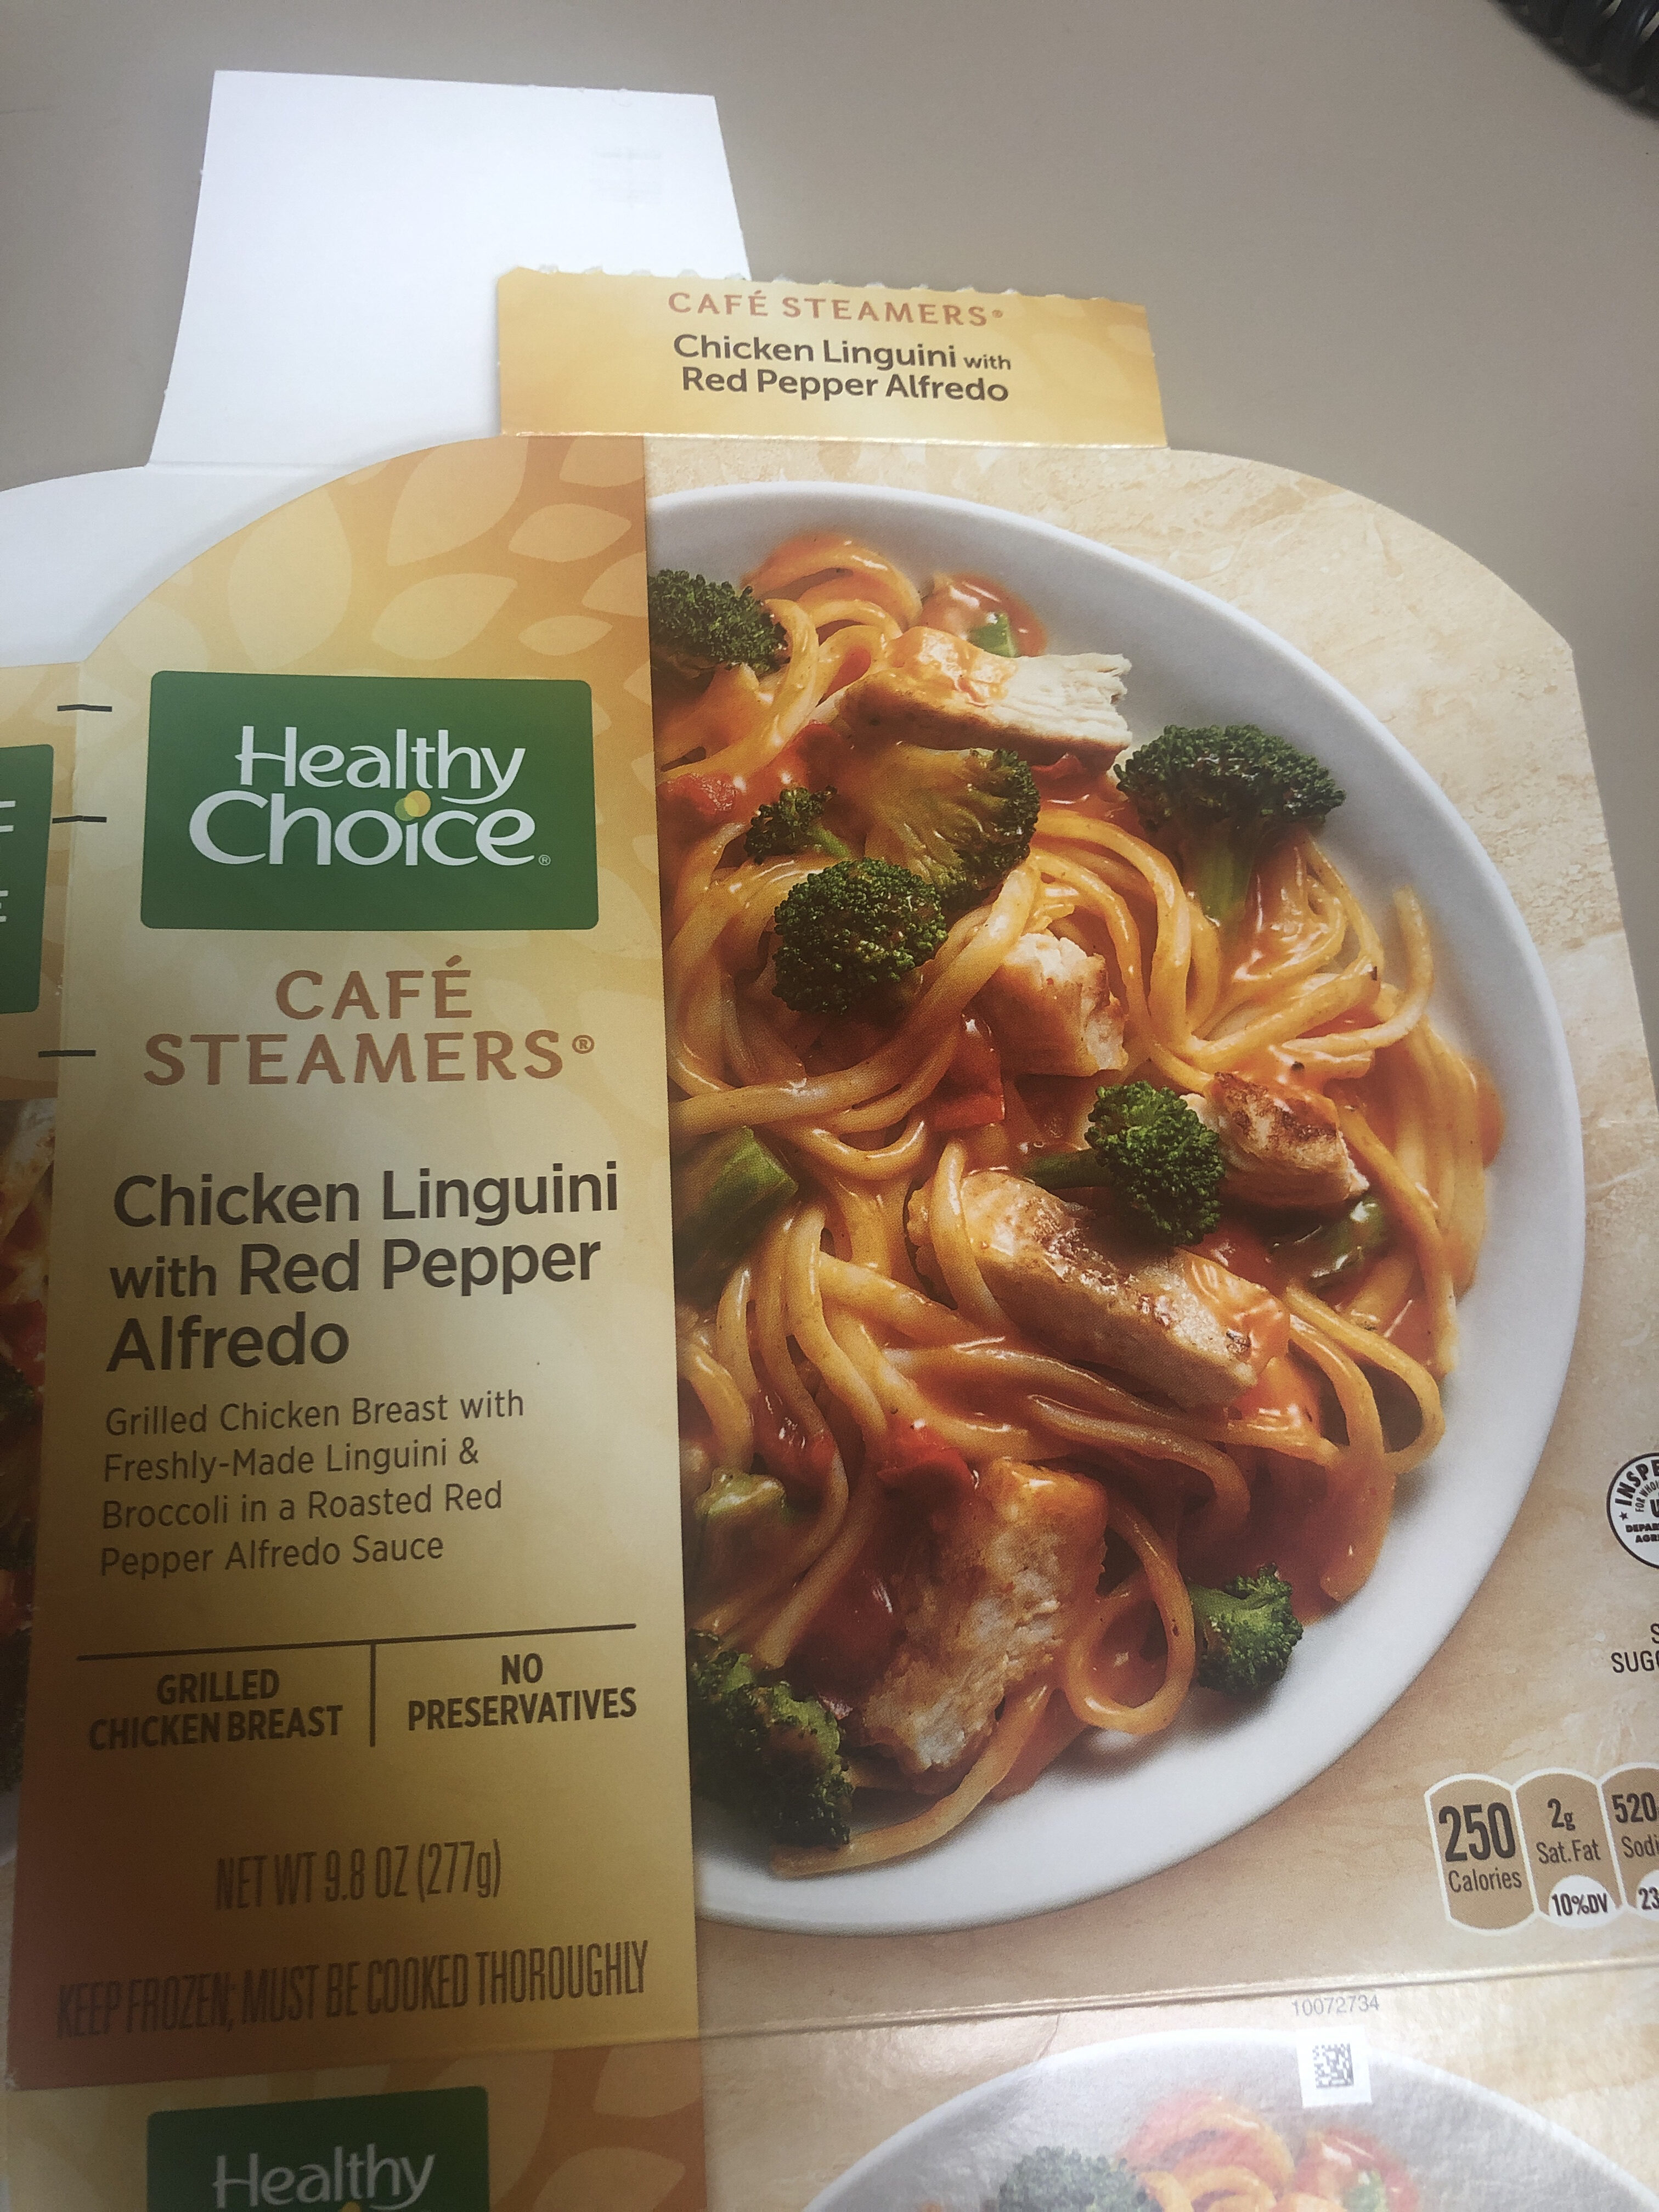 Cafe Steamers Chicken Linguini with Red Pepper Alfredo - Product